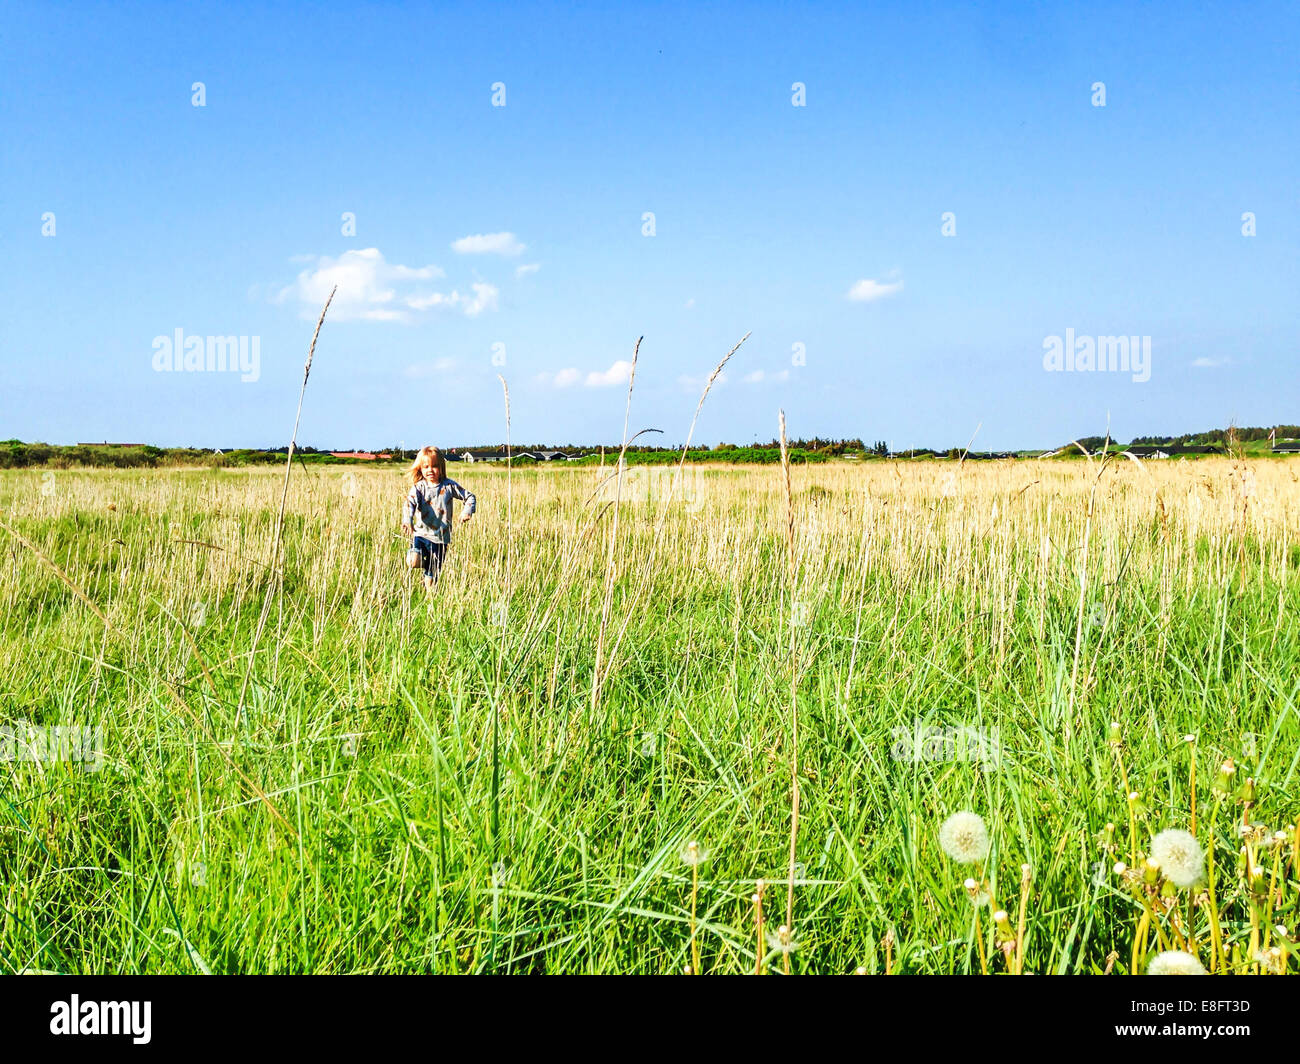 Boy running through field, Denmark - Stock Image